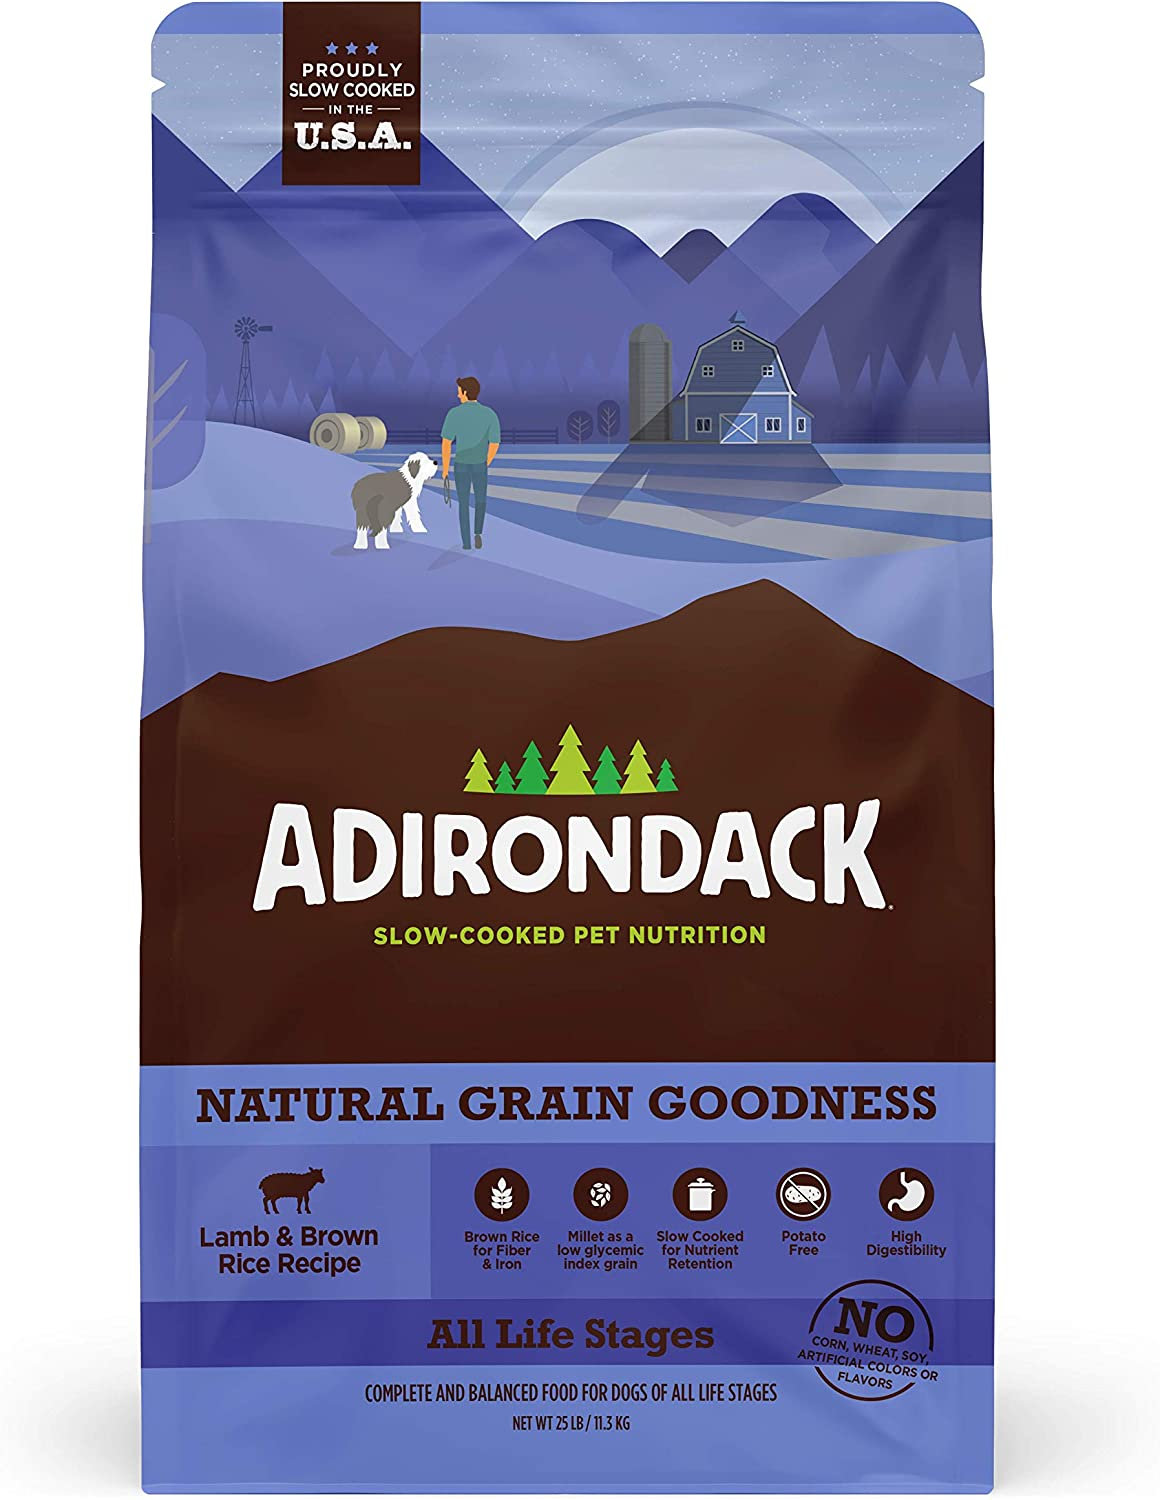 Adirondack Dog Food Made in USA [Complete and Balanced Adult Dog Food For All Life Stages], Lamb Meal & Brown Rice Recipe